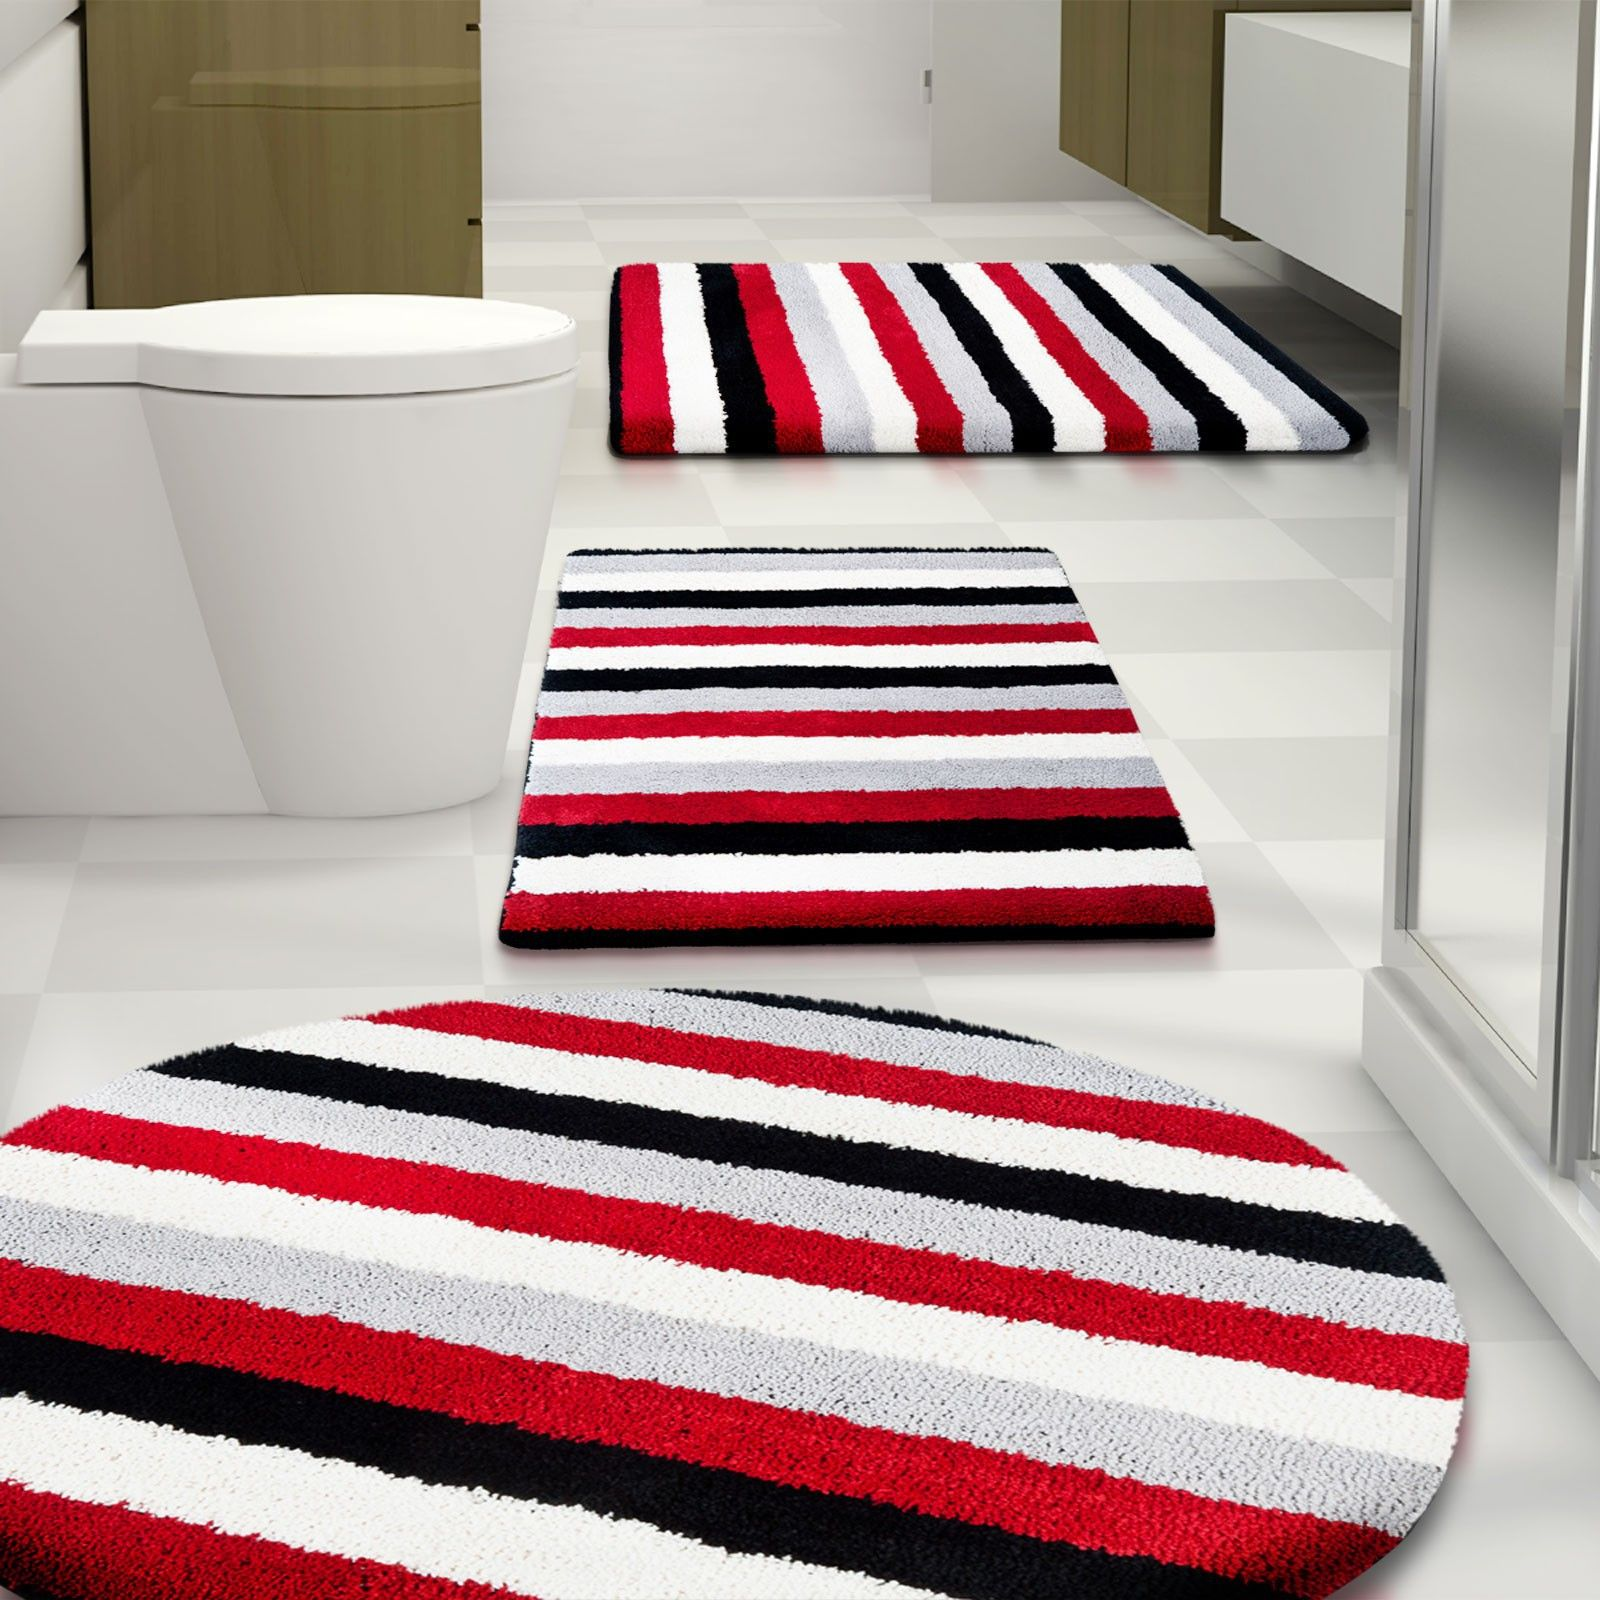 bath mat rug paul 5 sizes available red bathroom rugs pinterest bath mat bath and. Black Bedroom Furniture Sets. Home Design Ideas